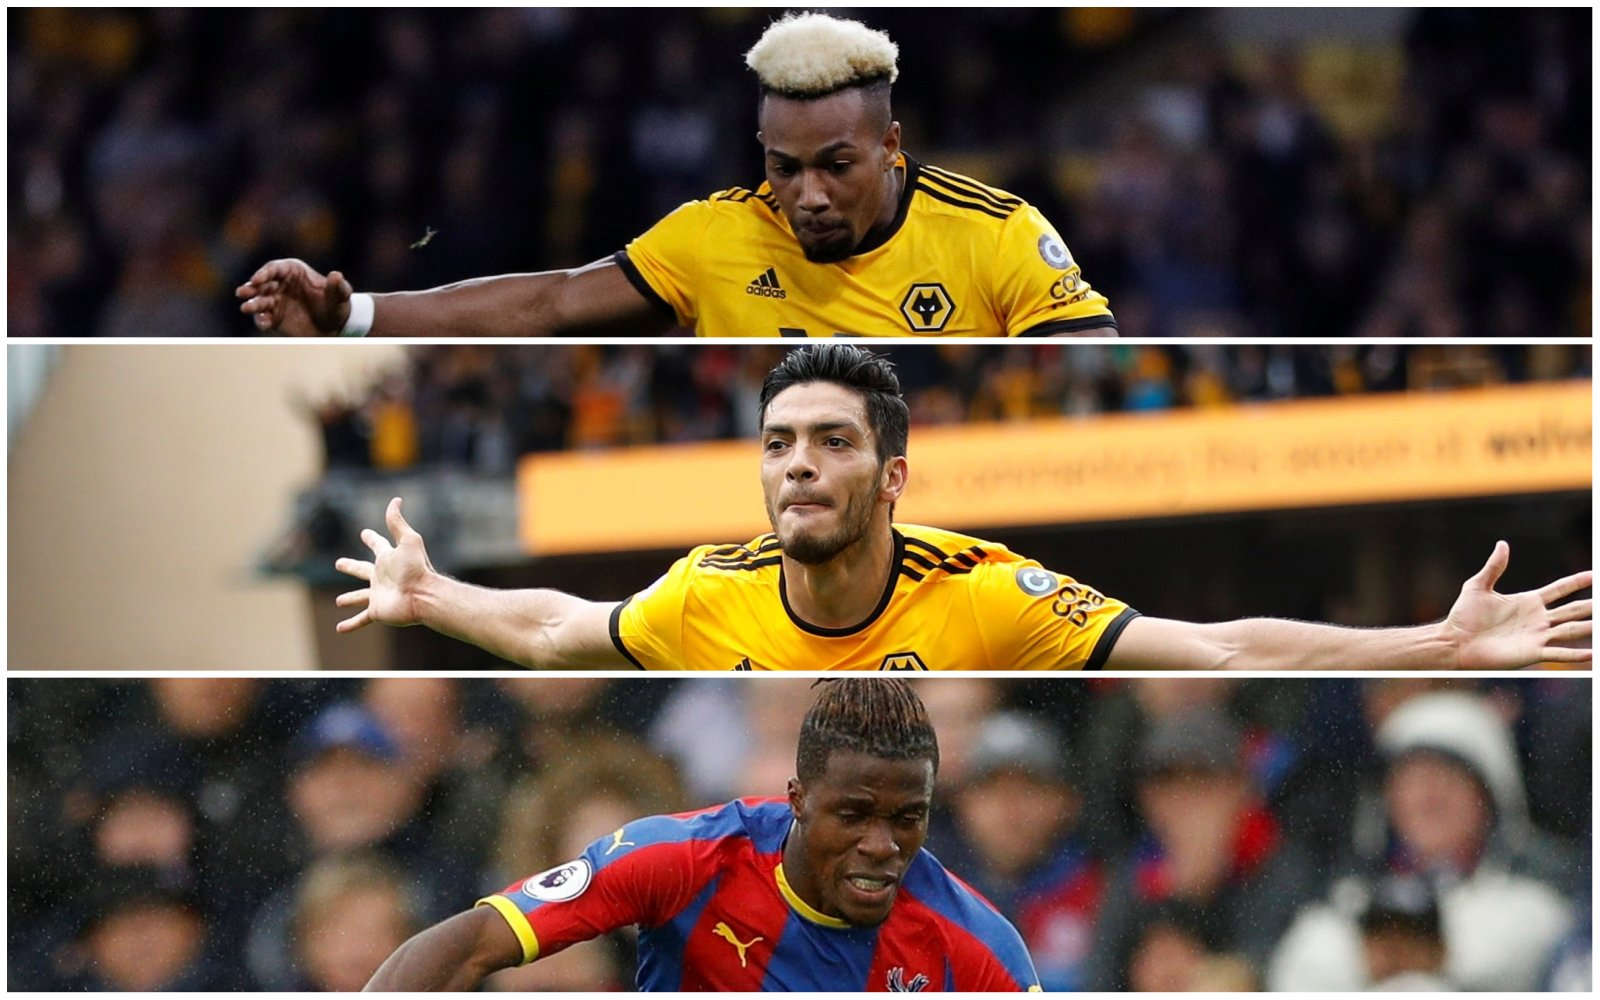 Palace-Wolves Combined XI - Forwards